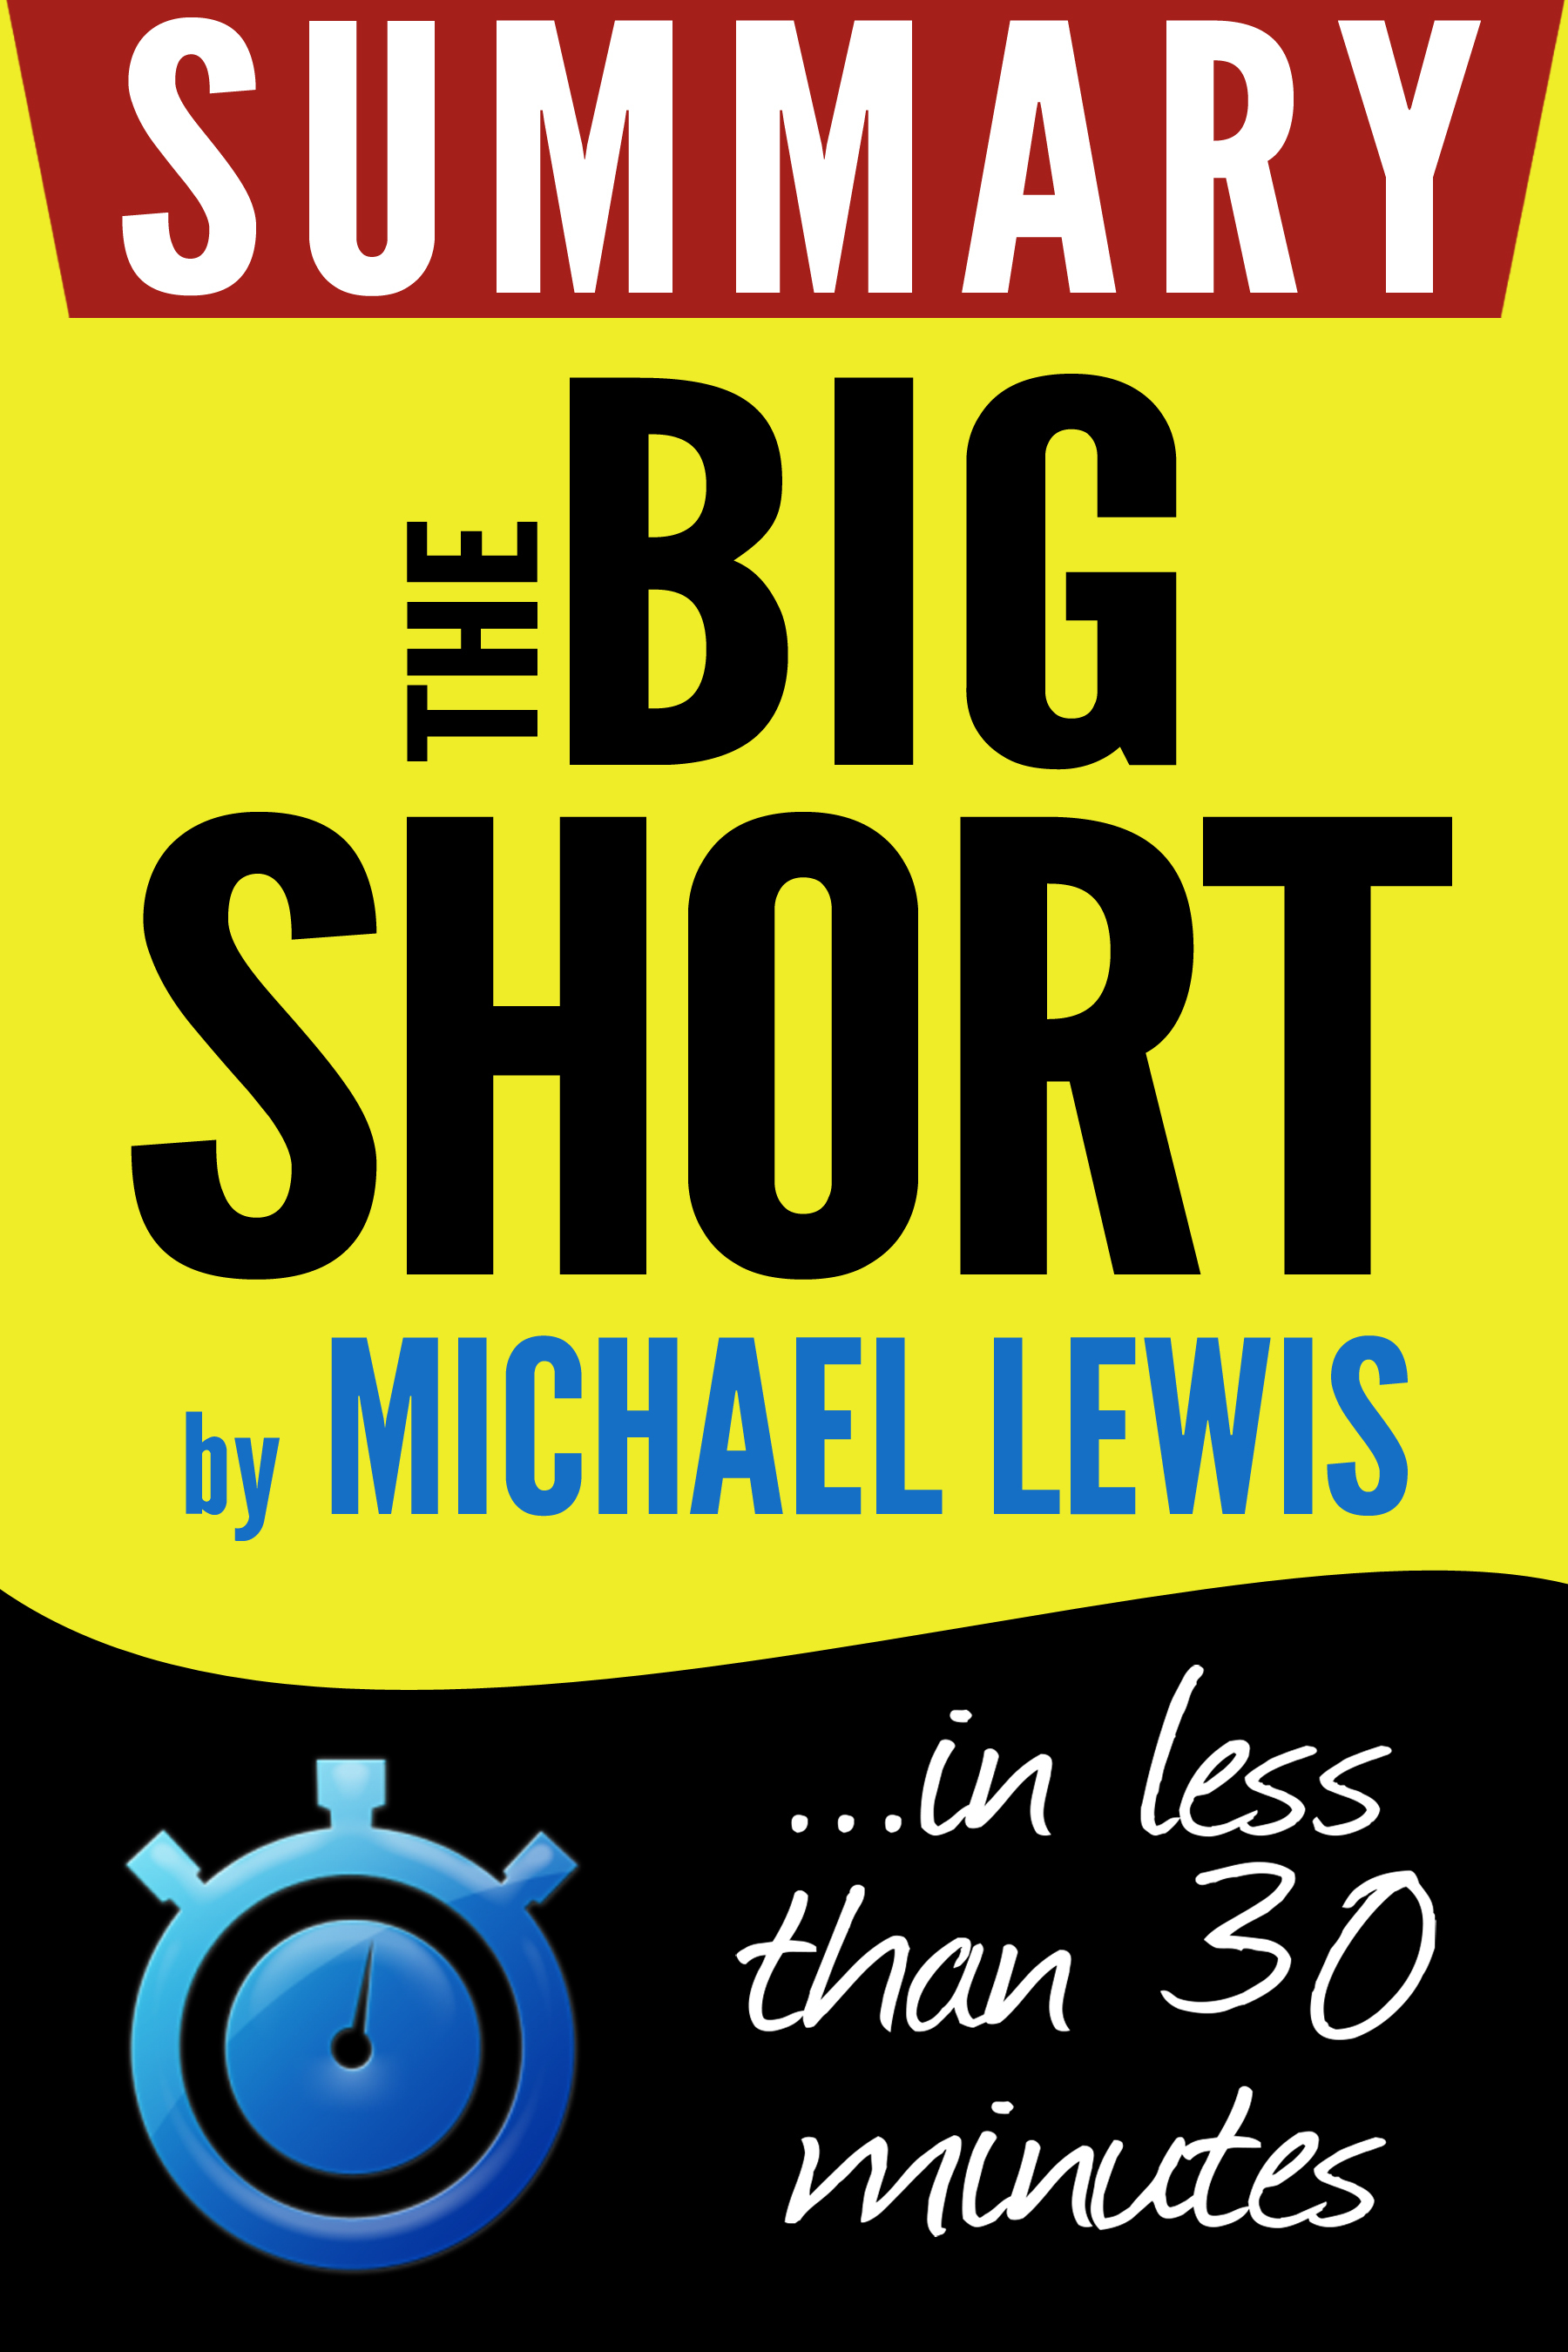 The Big Short: Inside the Doomsday Machine: Summary in less than 30 minutes